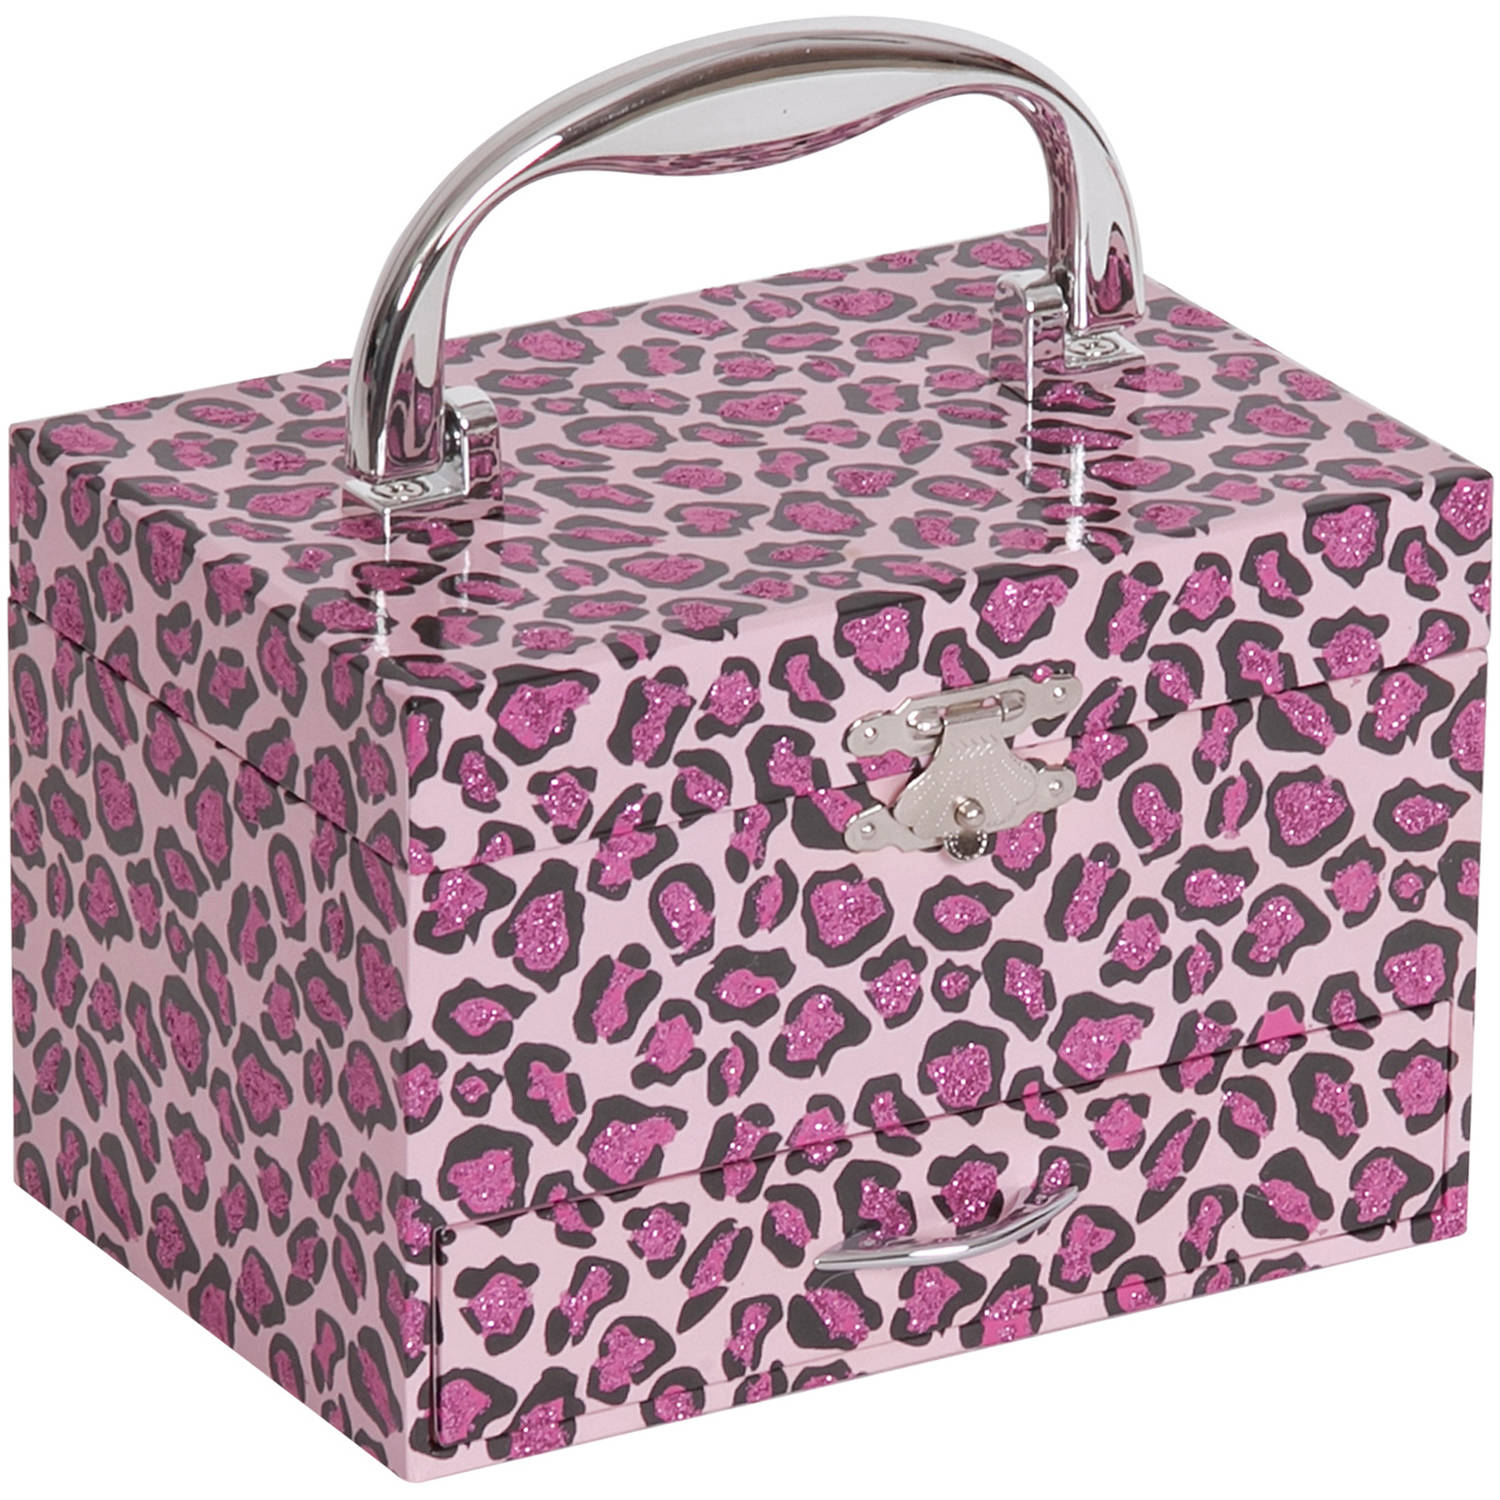 Mele Designs Josie Girl's Musical Ballerina Jewelry Box with Leopard Design